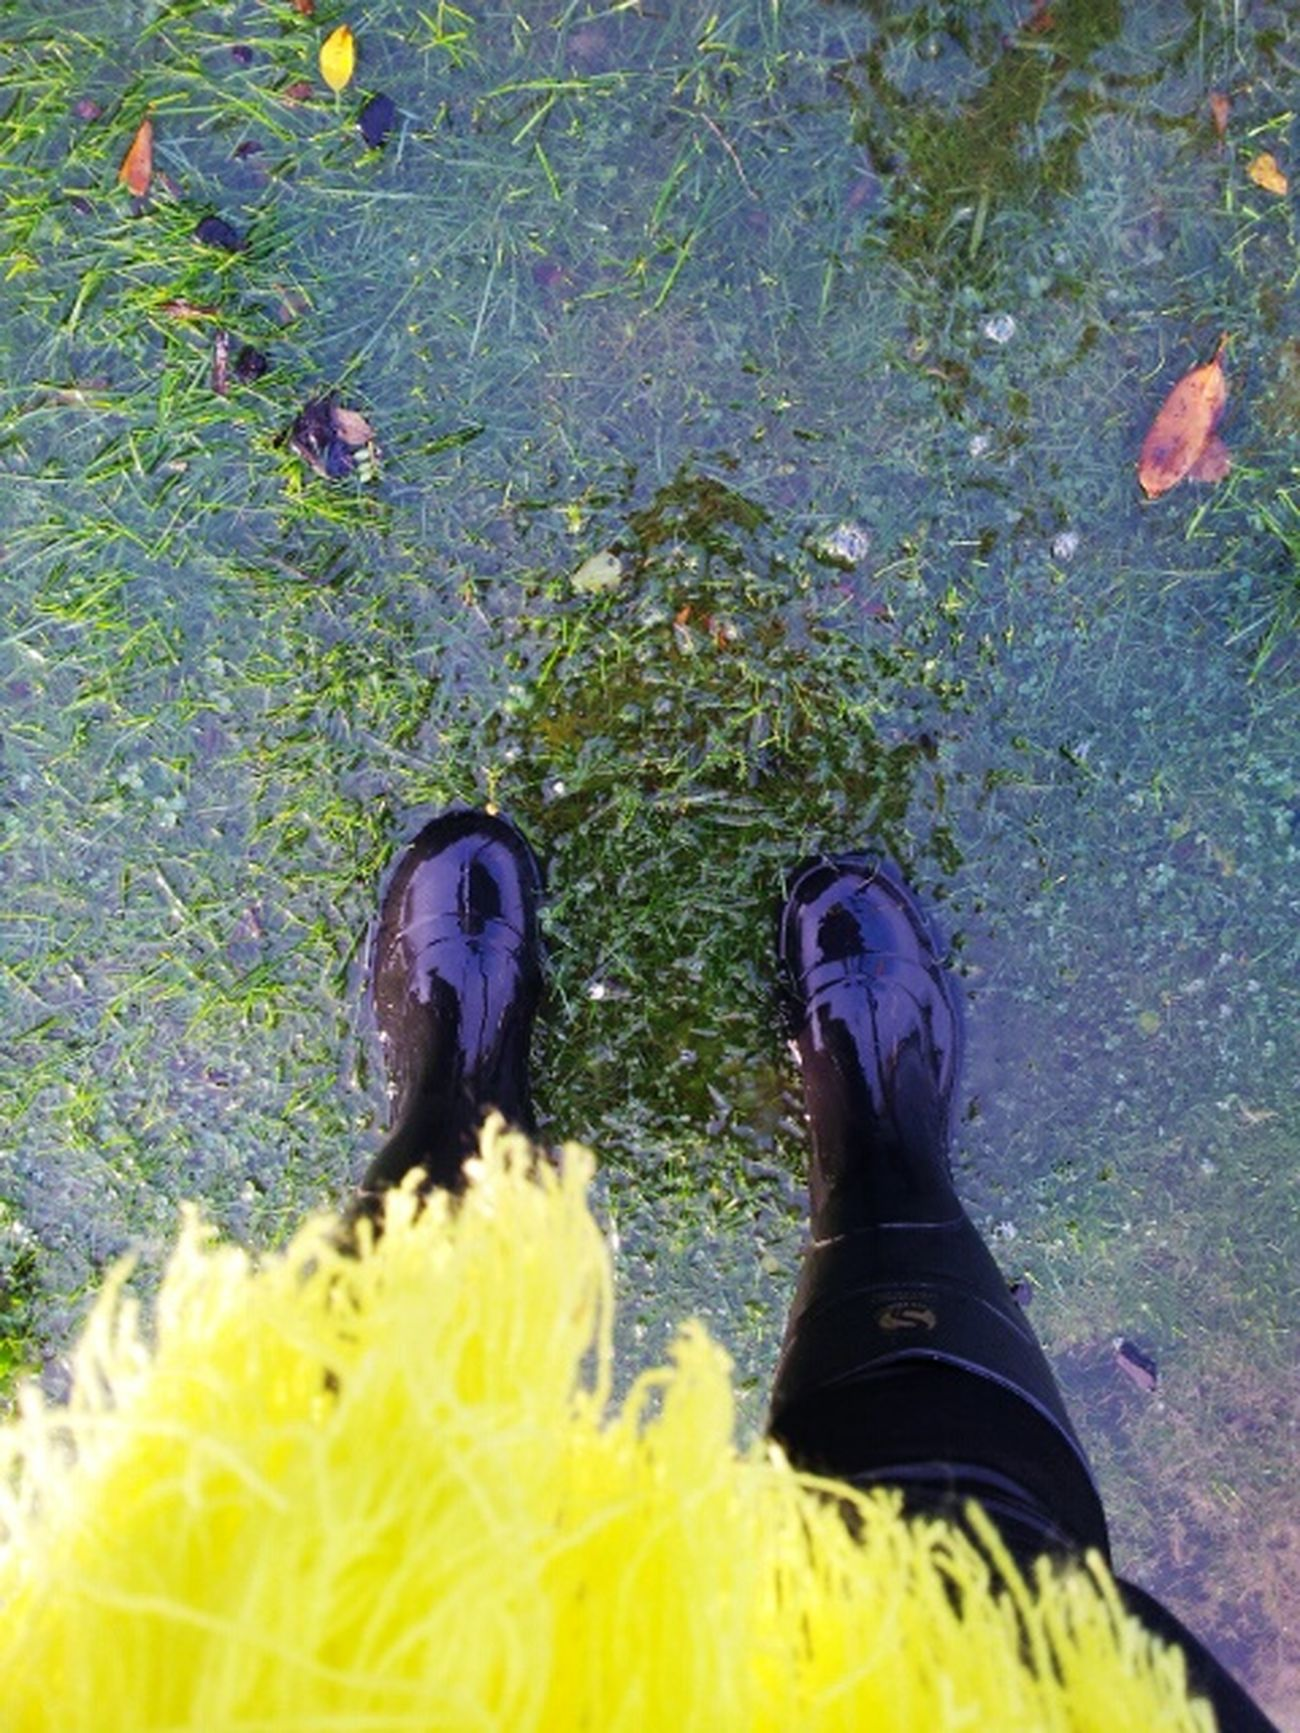 Gumboots Kinda Day Chilly Yellow Scarf  Raining Day Dunedin New Zealand